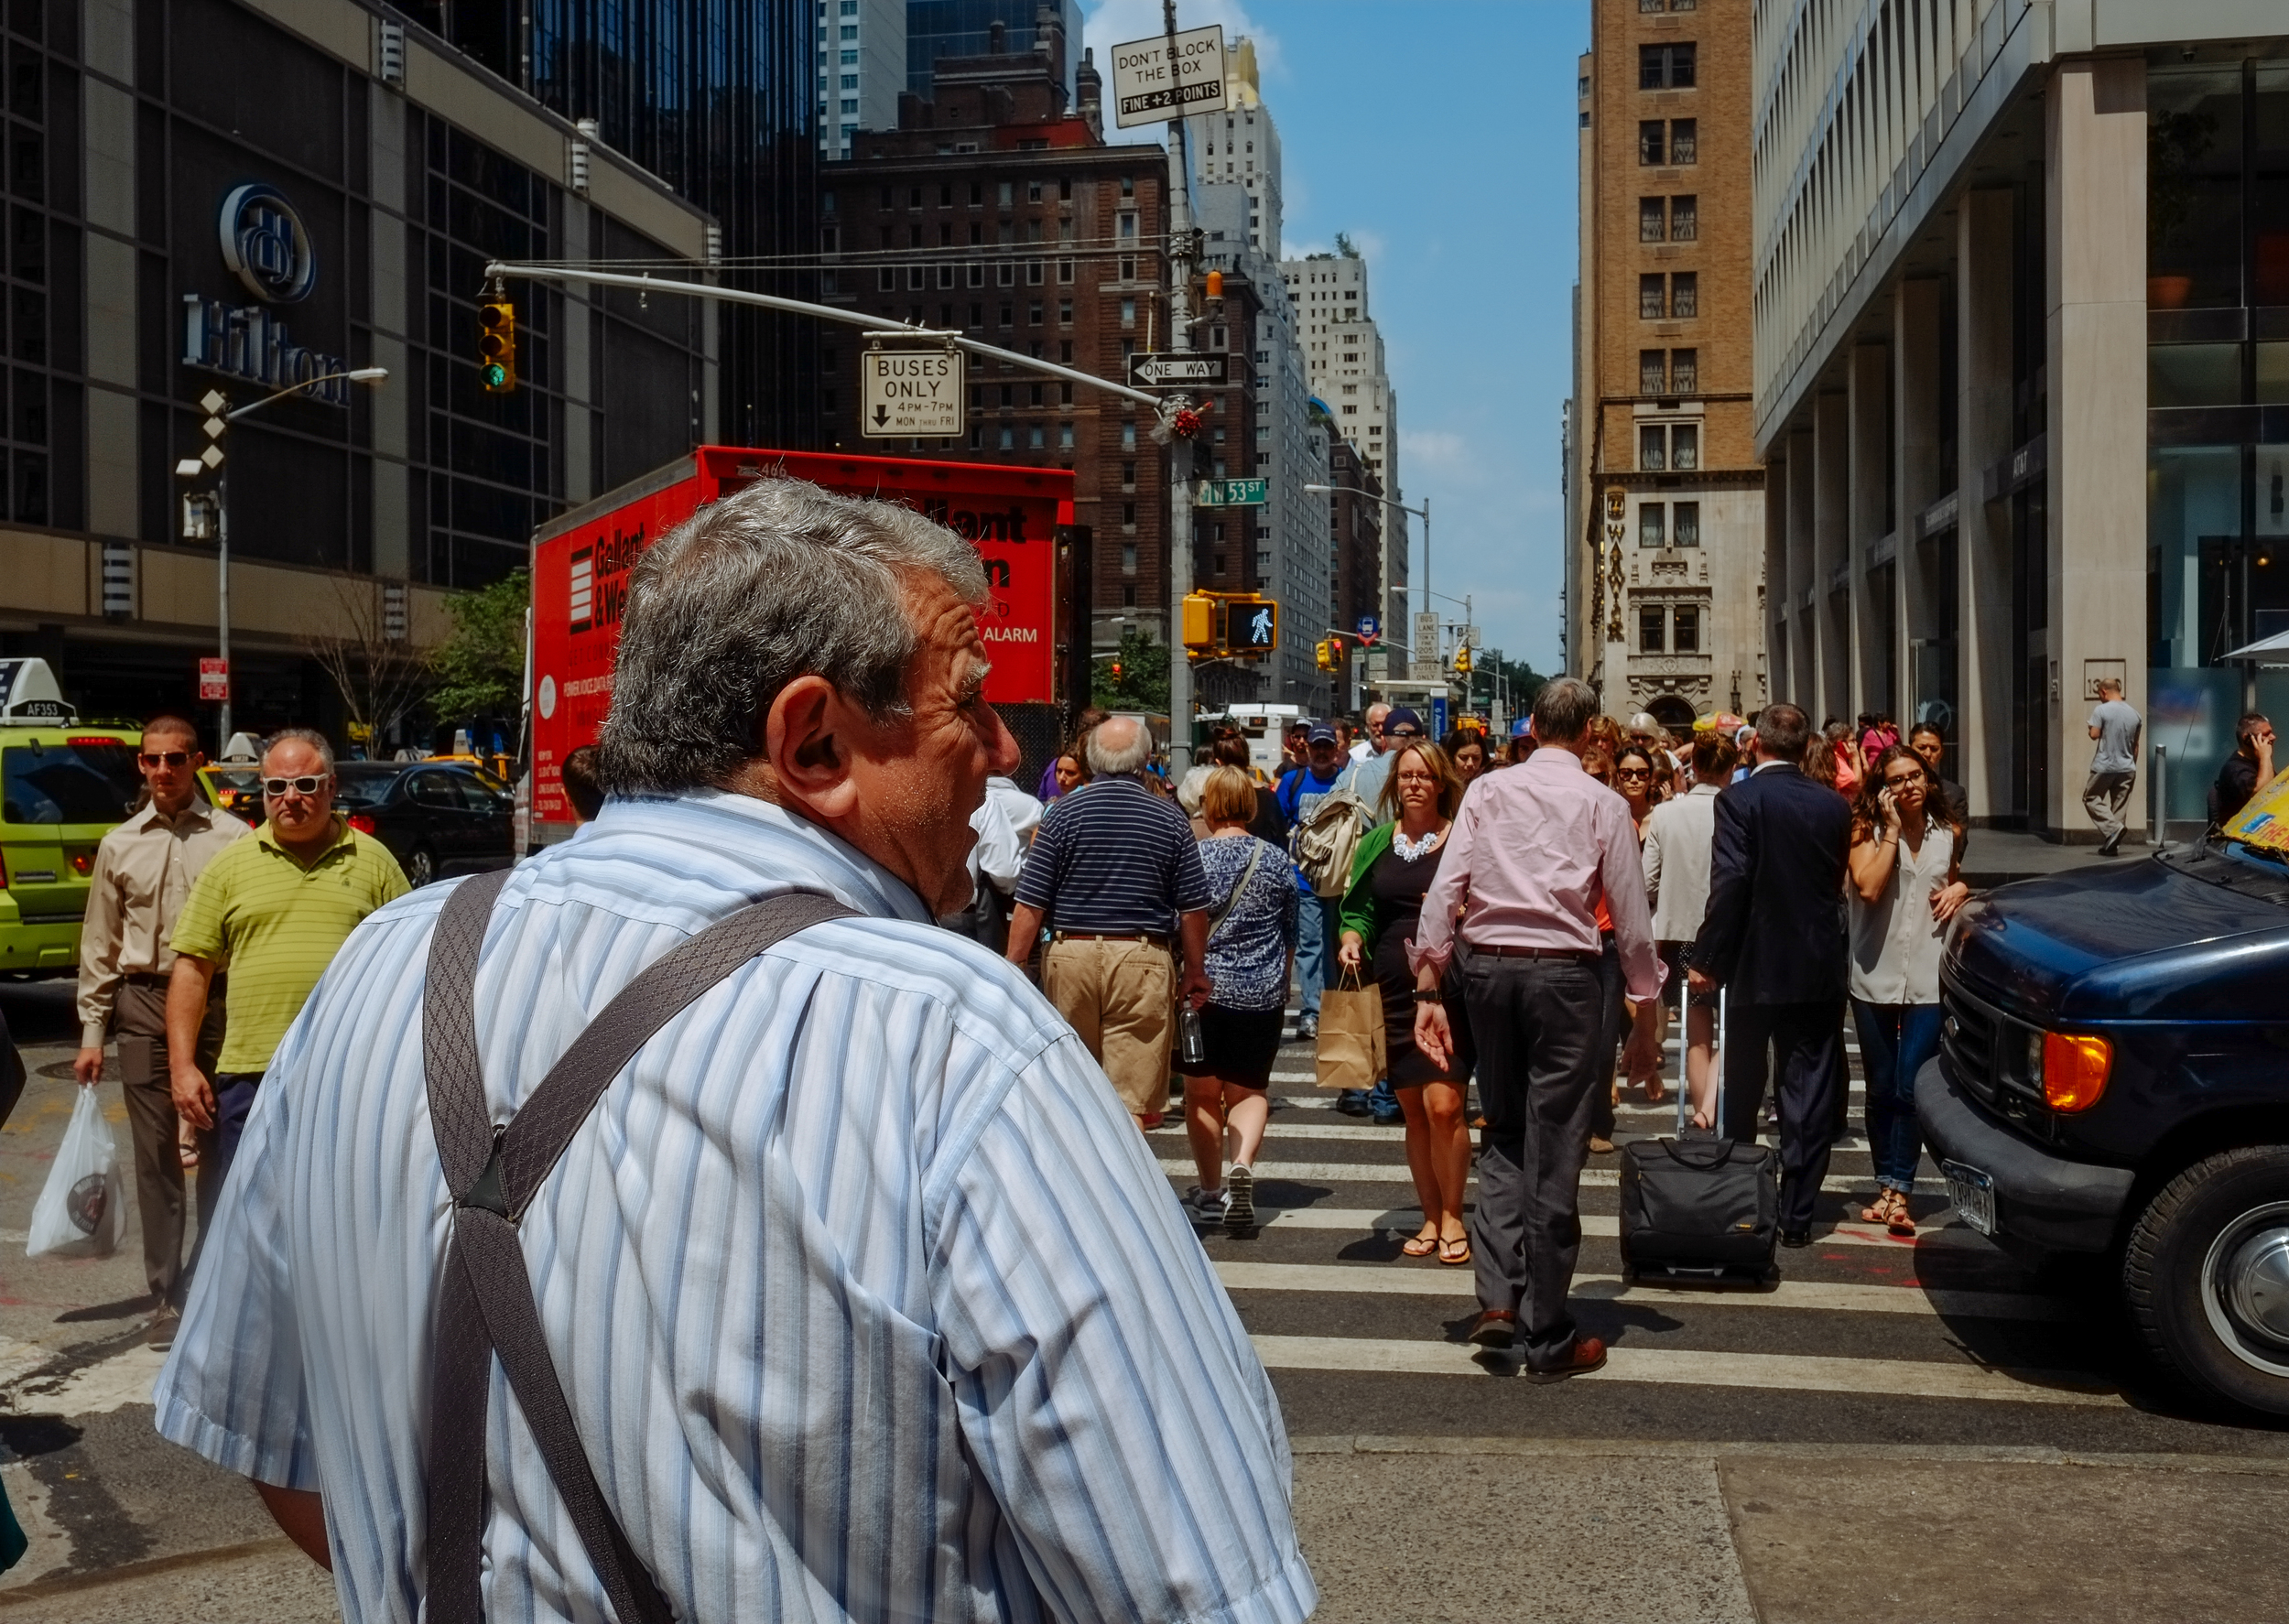 Midtown Madness (1 of 3).jpg